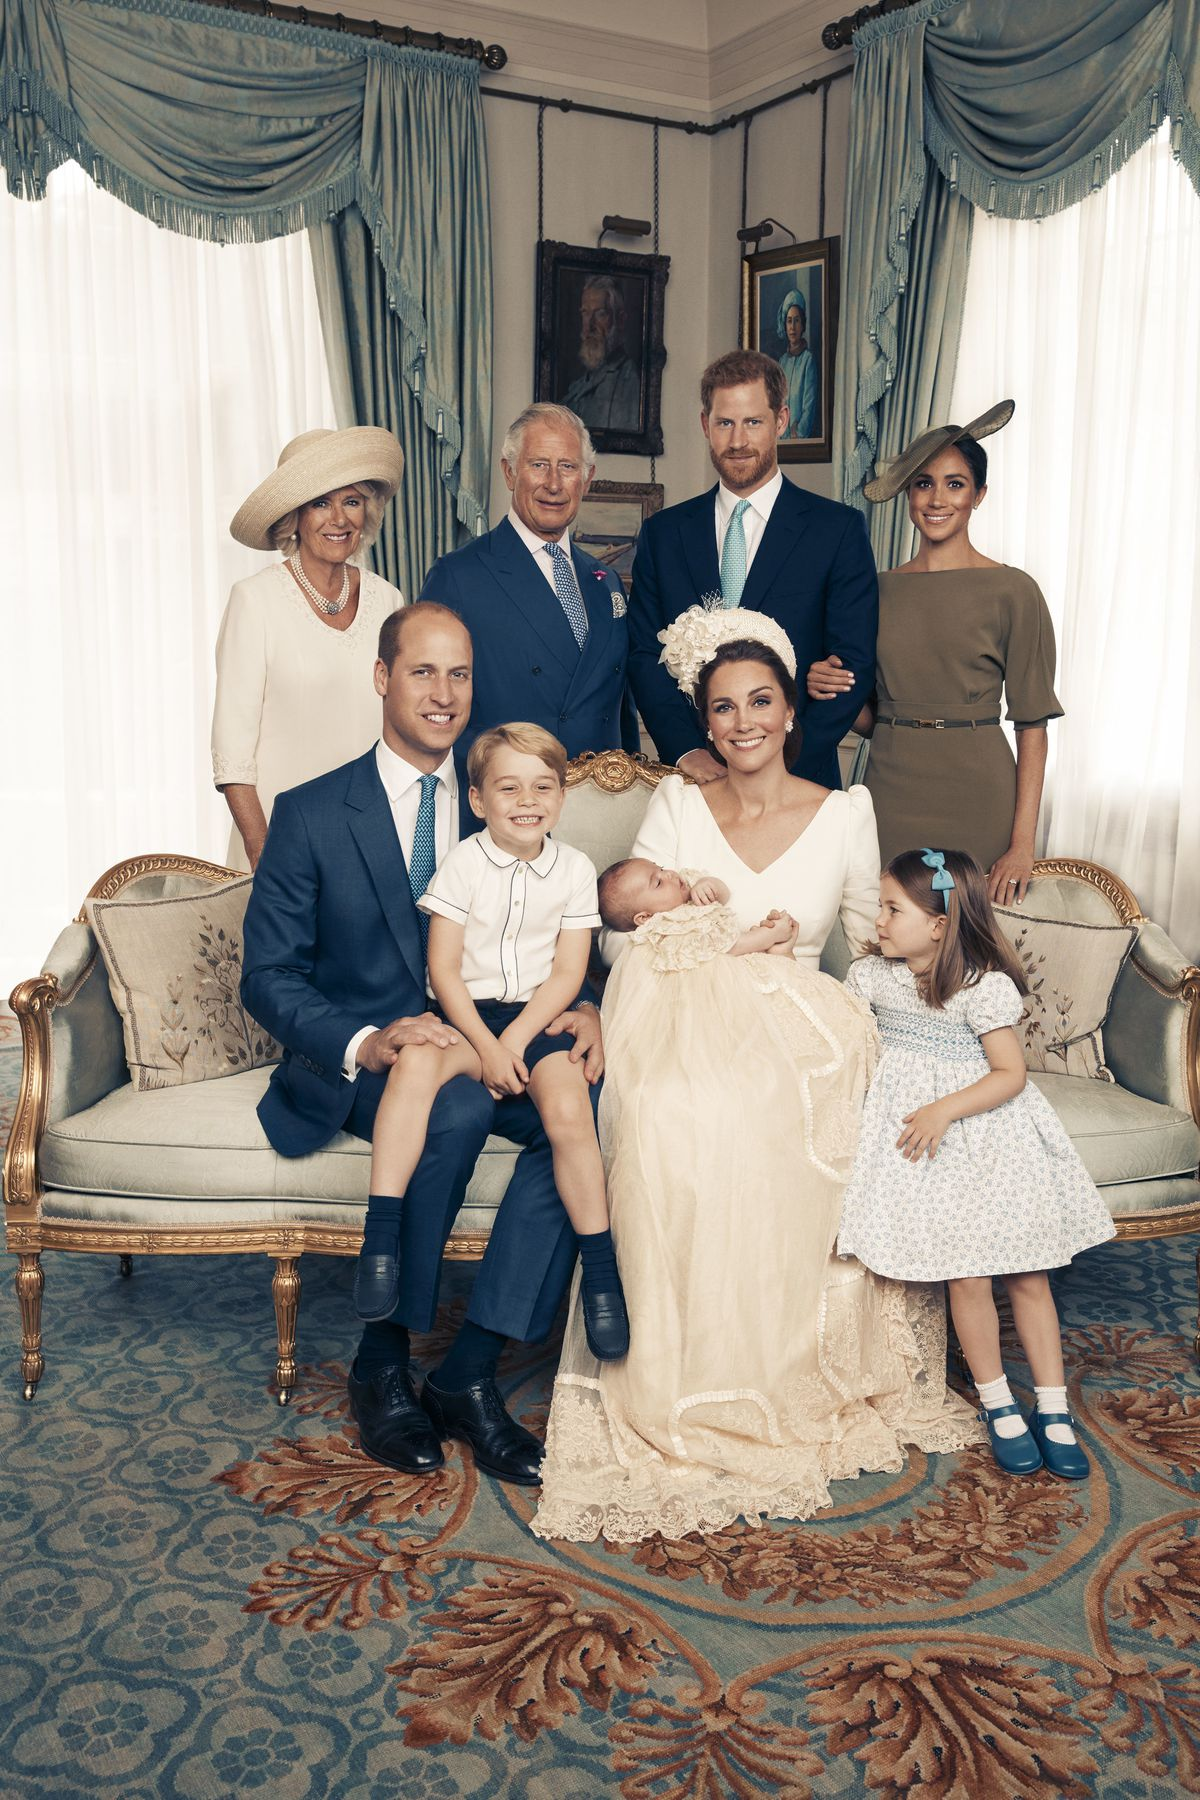 This Monday, July 9, 2018, photo shows an official photograph to mark the christening of Prince Louis at Clarence House, following Prince Louis' baptism, in London. Seated, left to right: Prince William; Prince George; Prince Louis; Kate, the Duchess of C